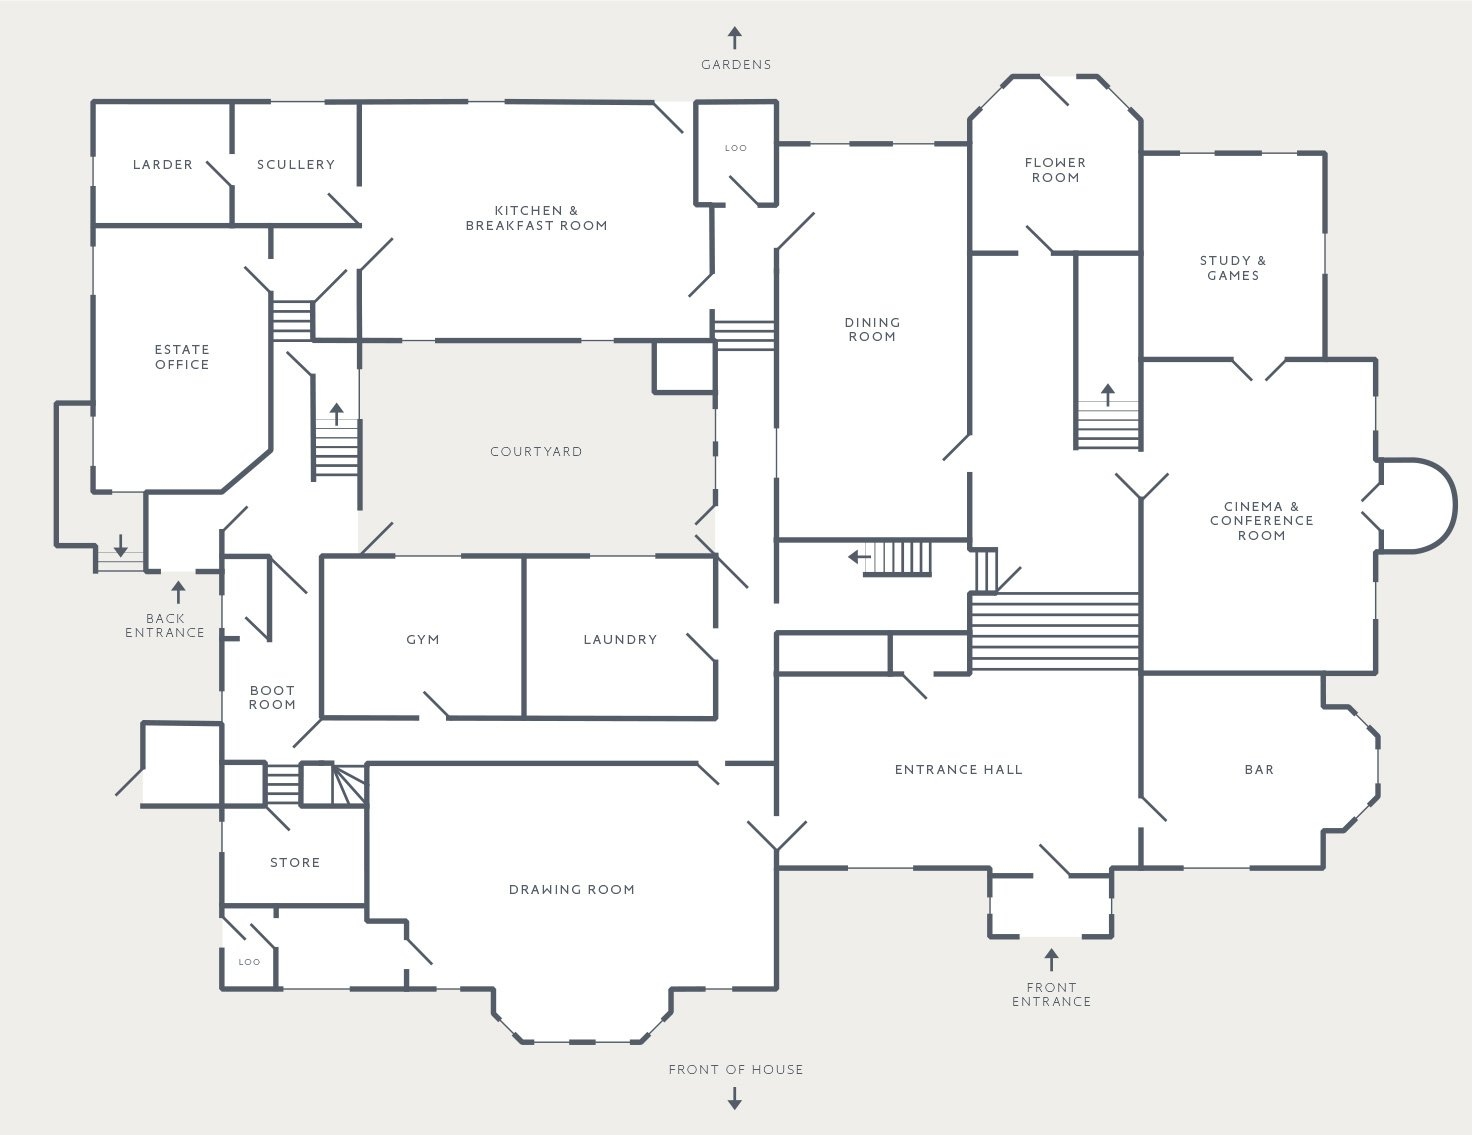 View the floorplan of Thorpe Manor